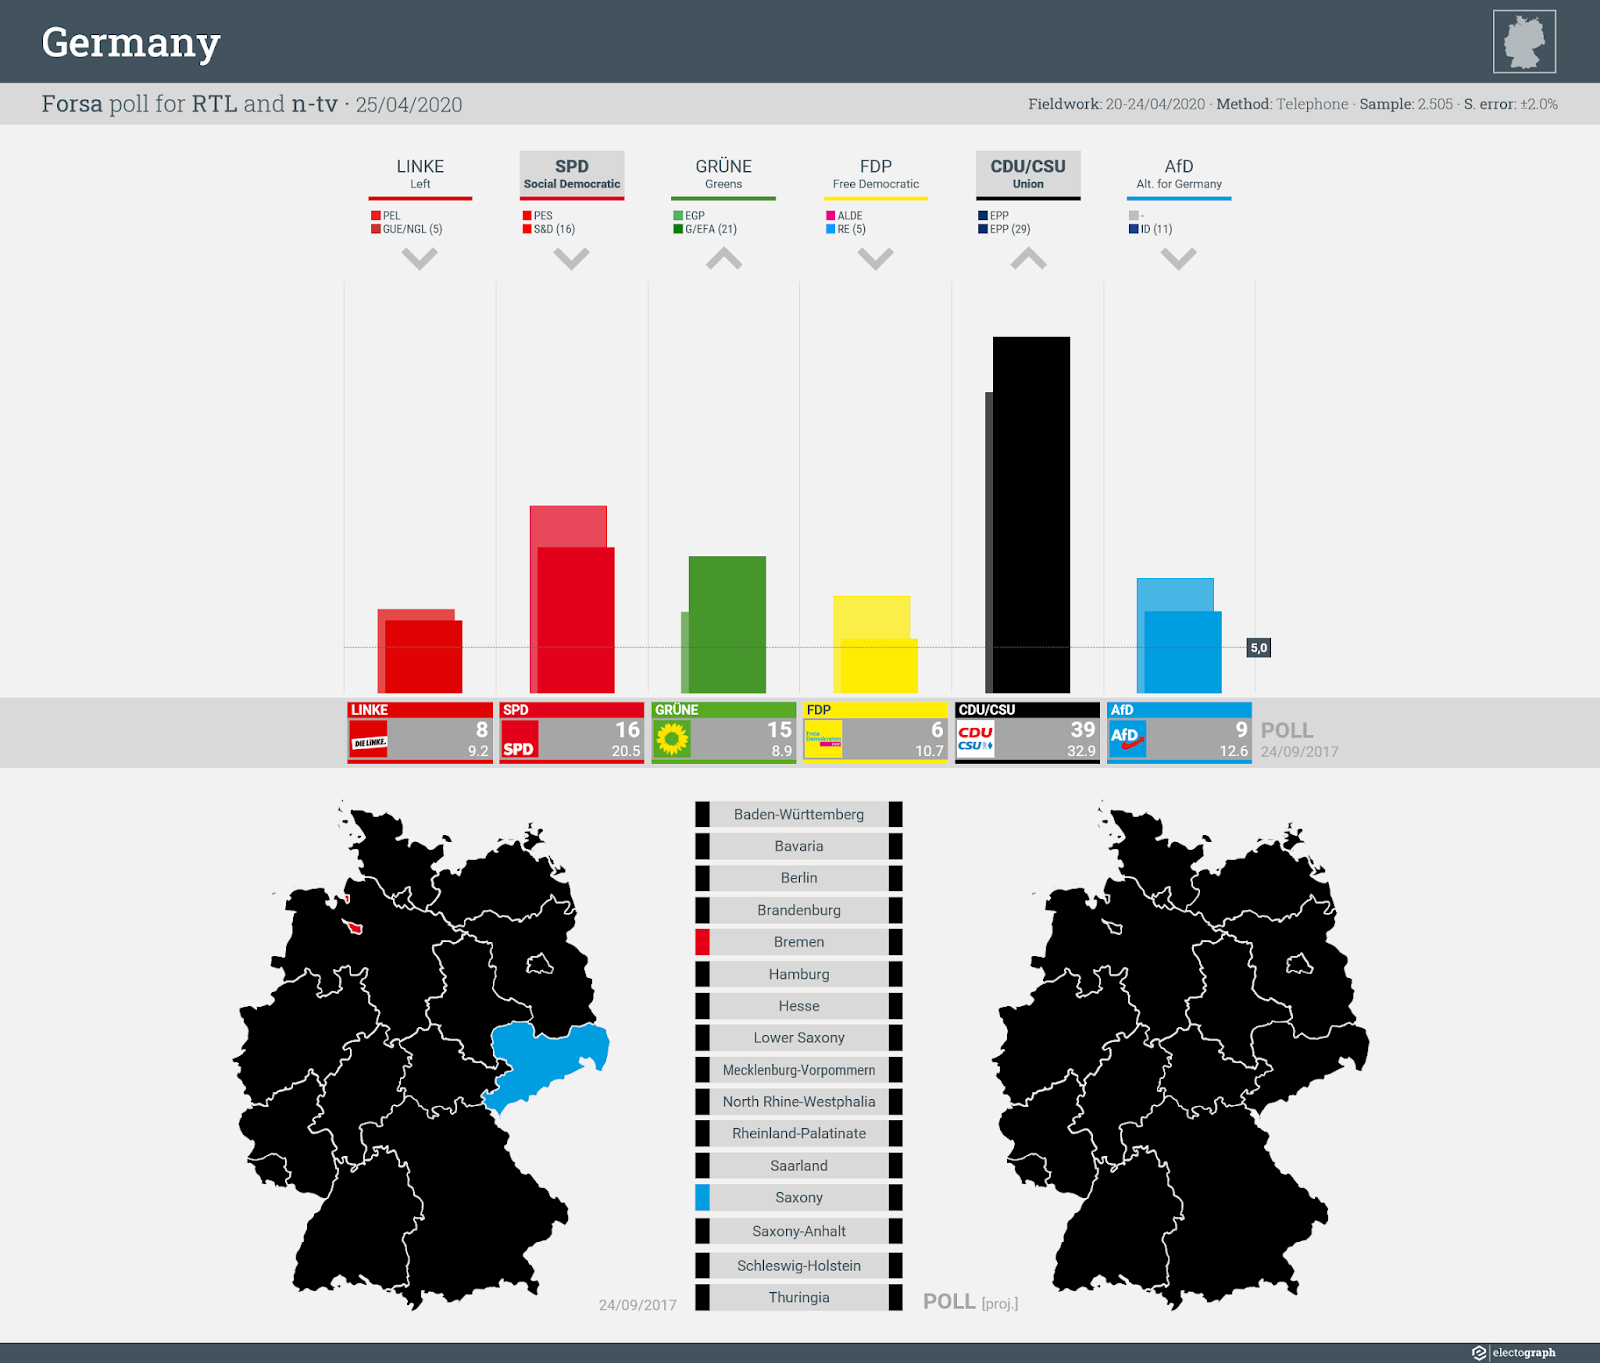 GERMANY: Forsa poll chart for RTL and n-tv, 25 April 2020